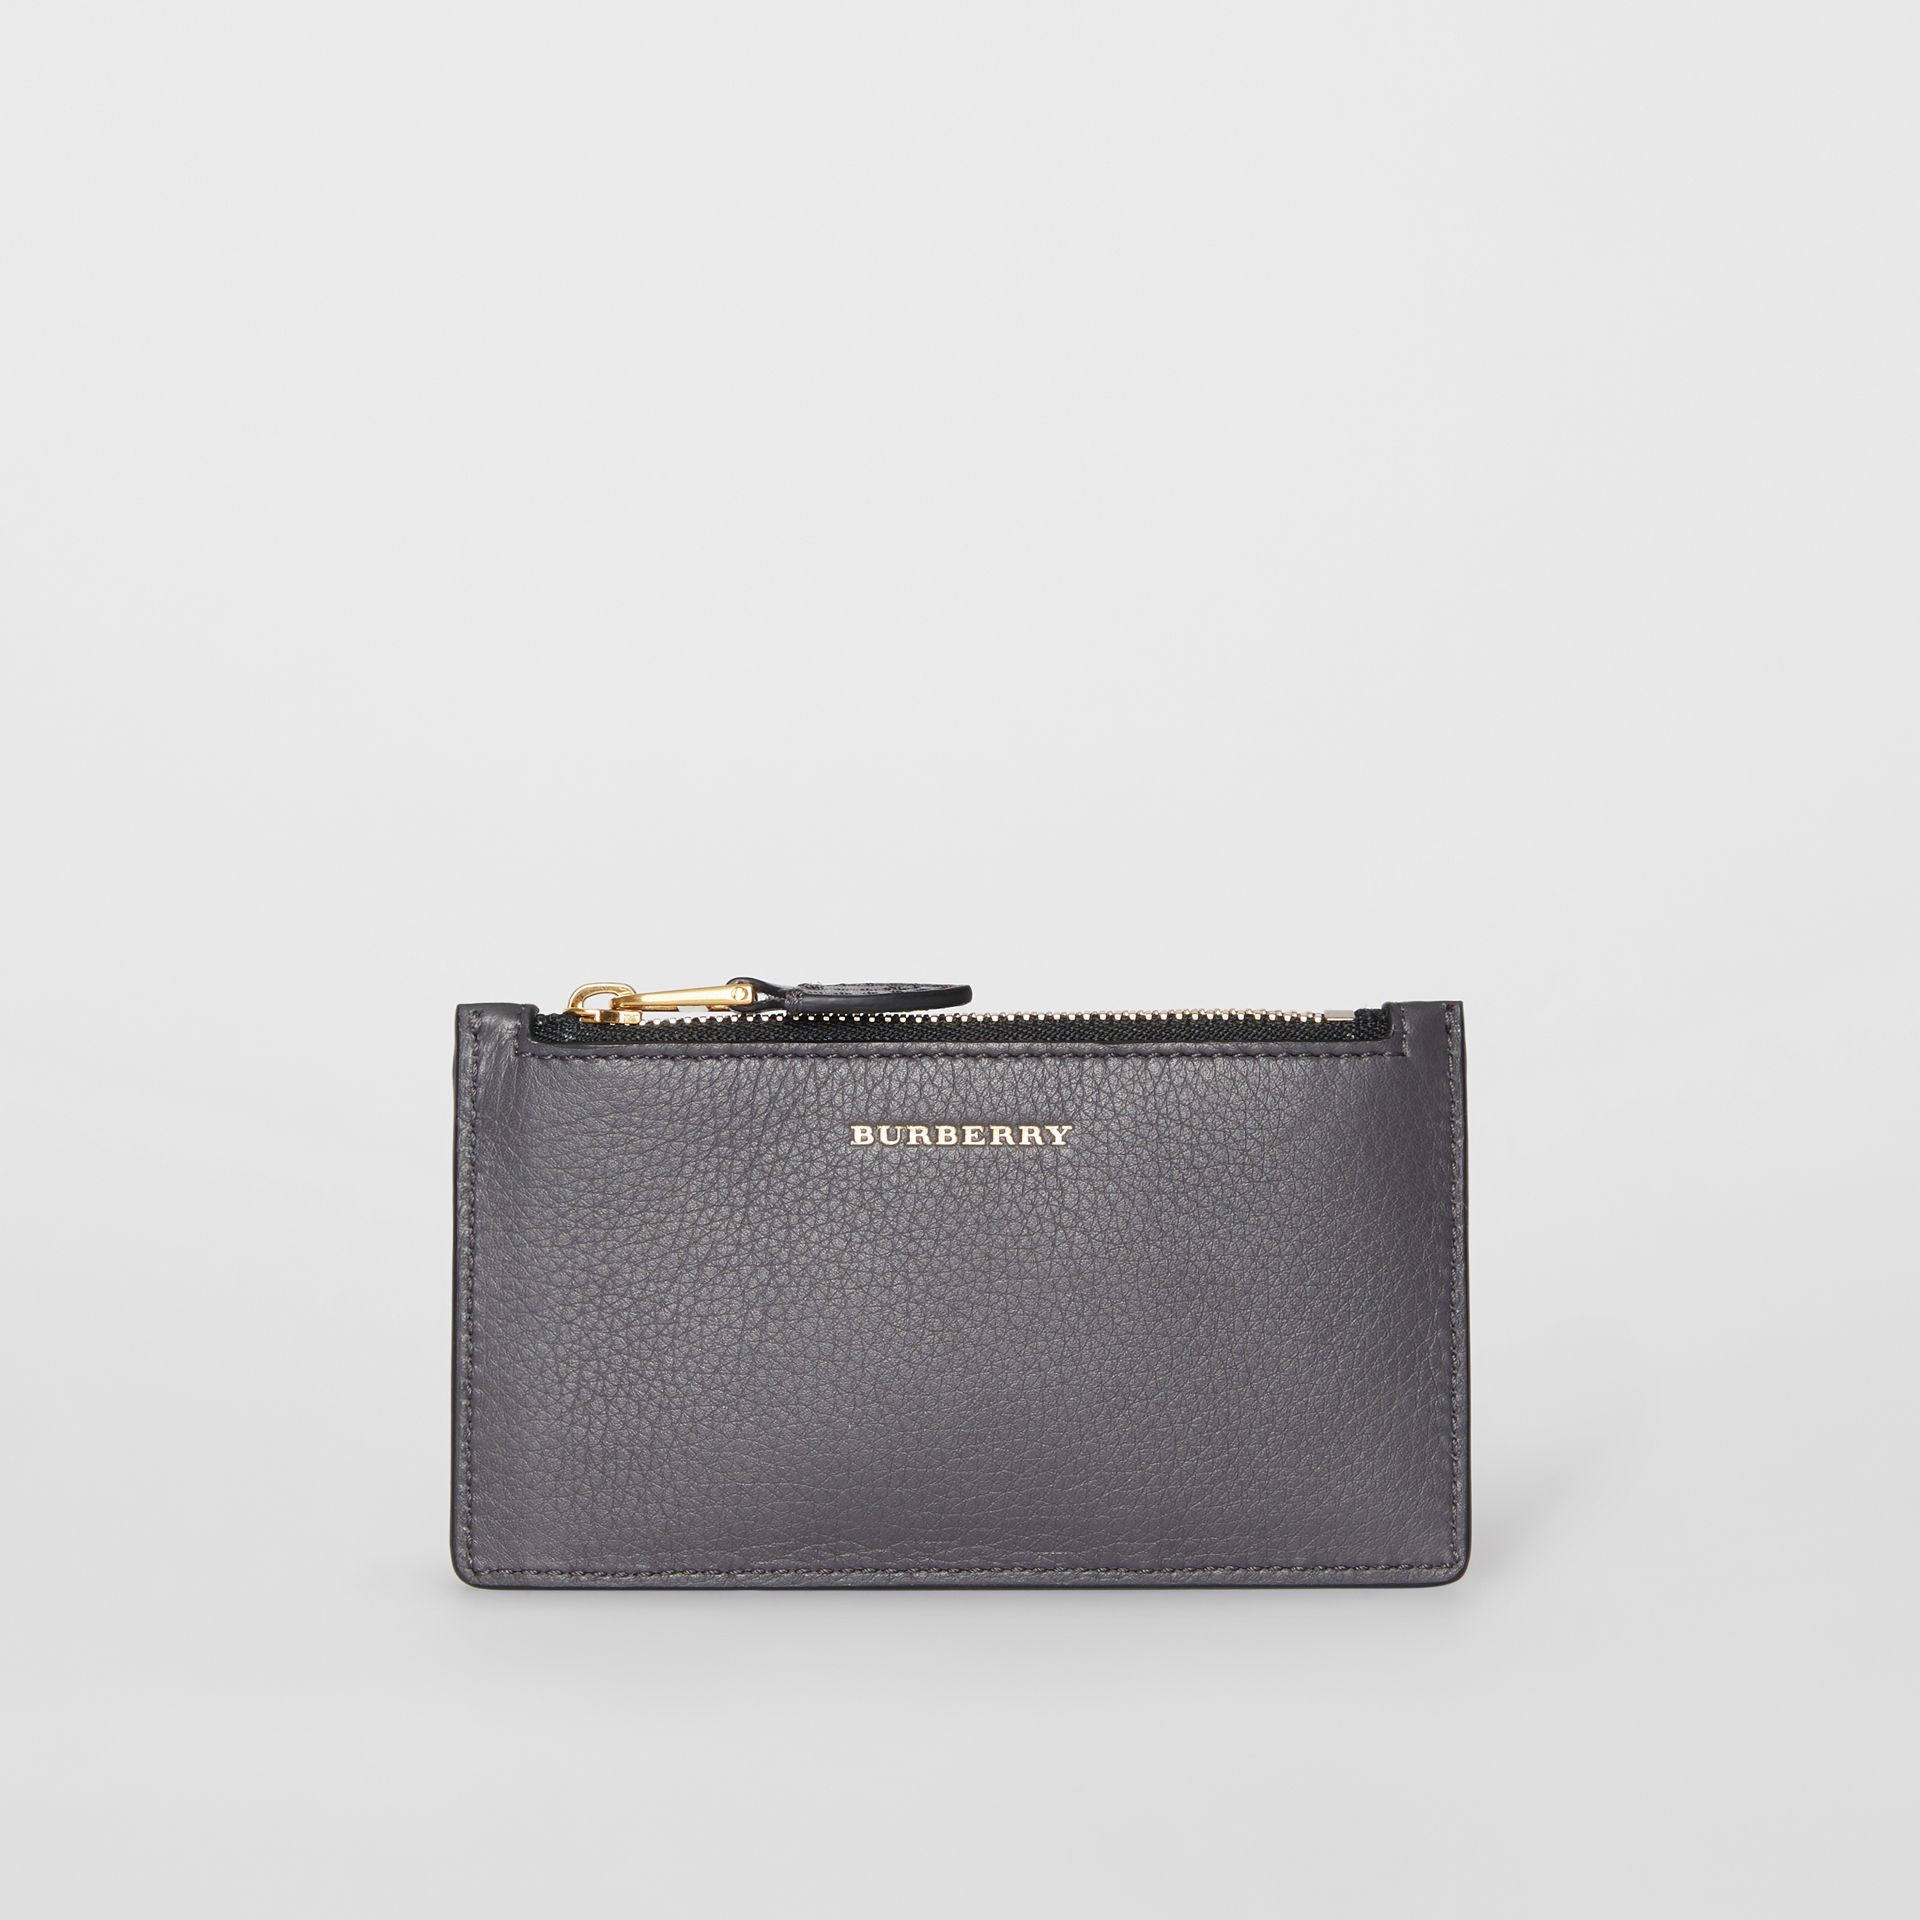 Two-tone Leather Card Case in Charcoal Grey - Women | Burberry Canada - gallery image 2